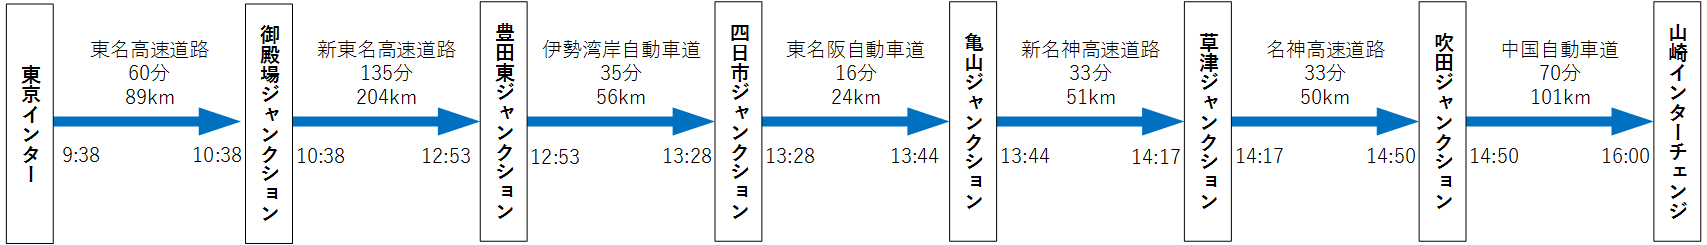 20160406_06.png